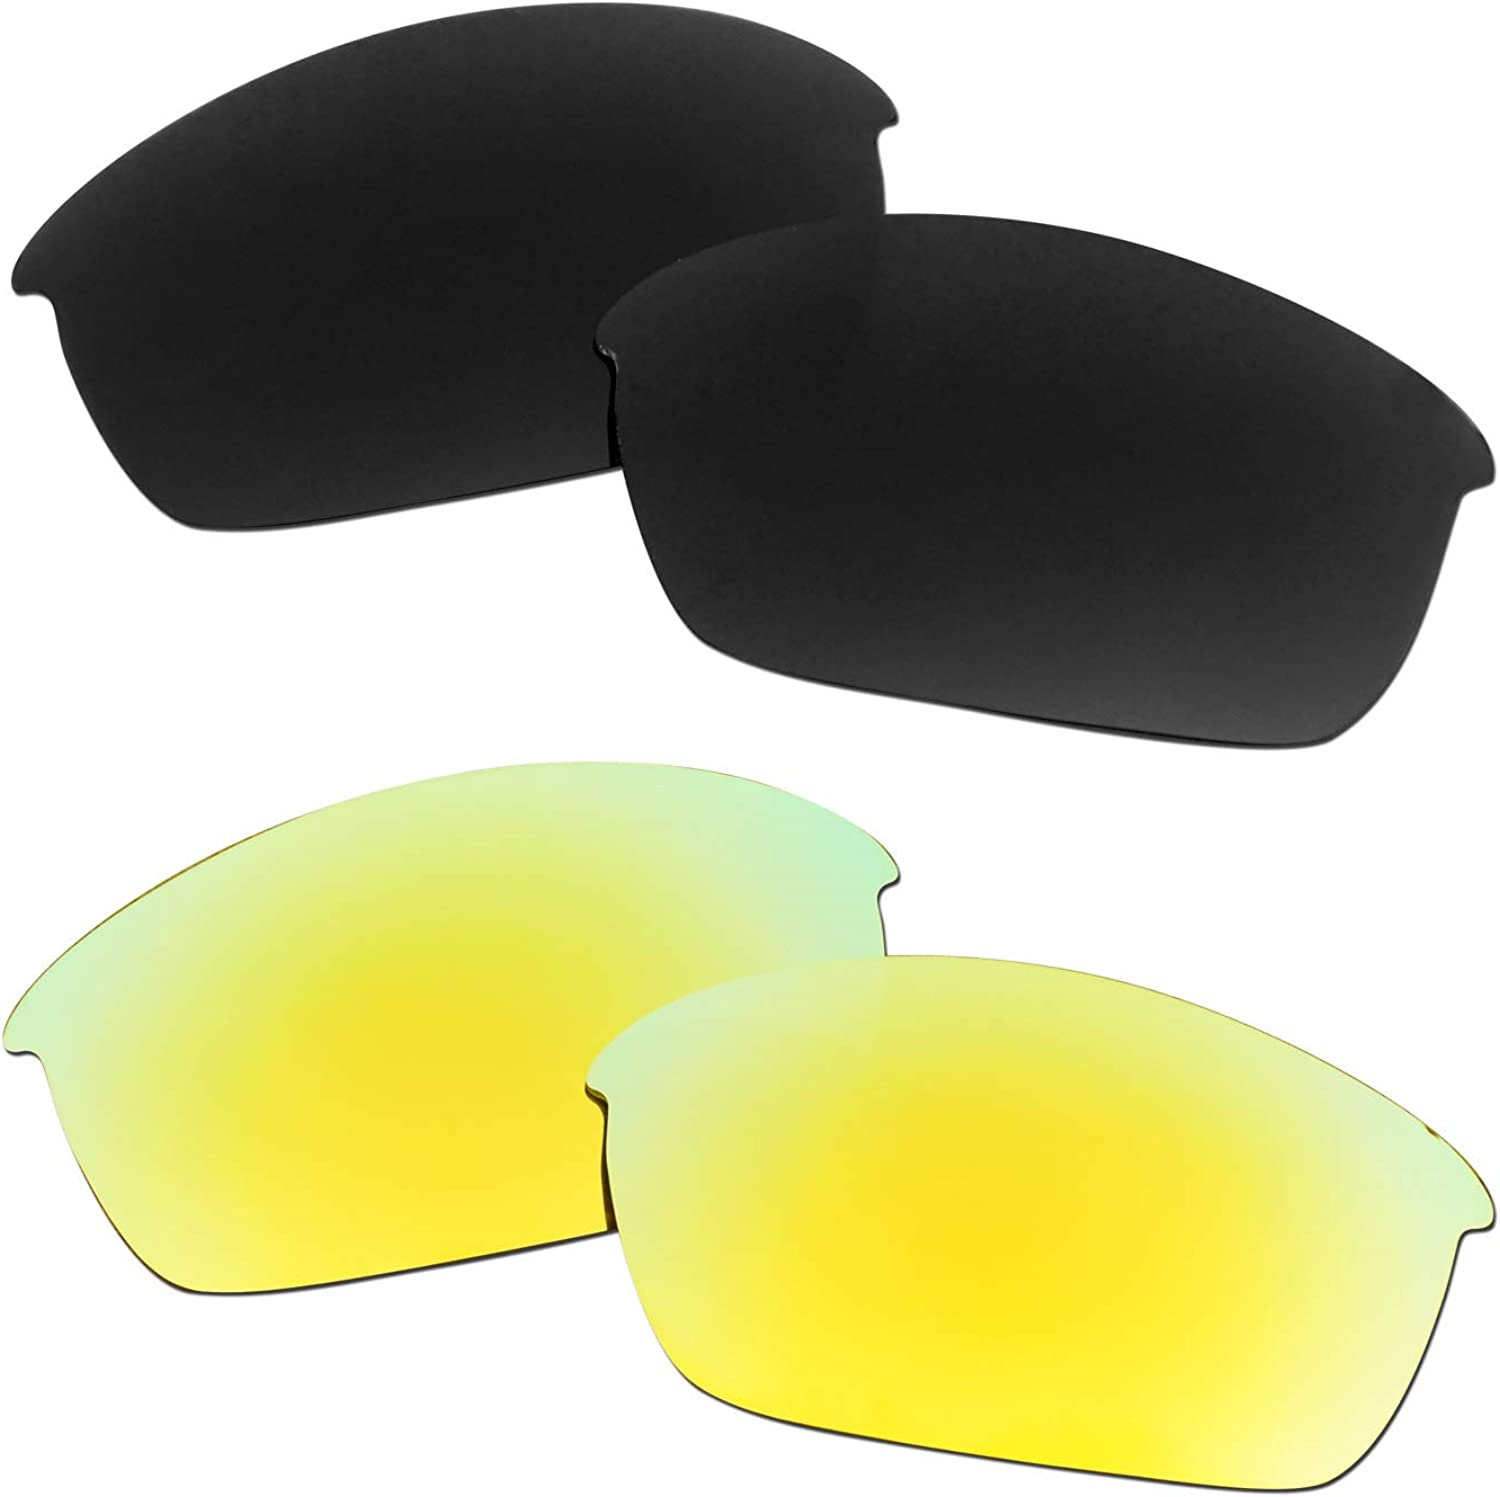 SOODASE For Oakley Flak Jacket Sunglasses 2 Pol Pairs Inventory cleanup selling sale Gold Fashionable Black